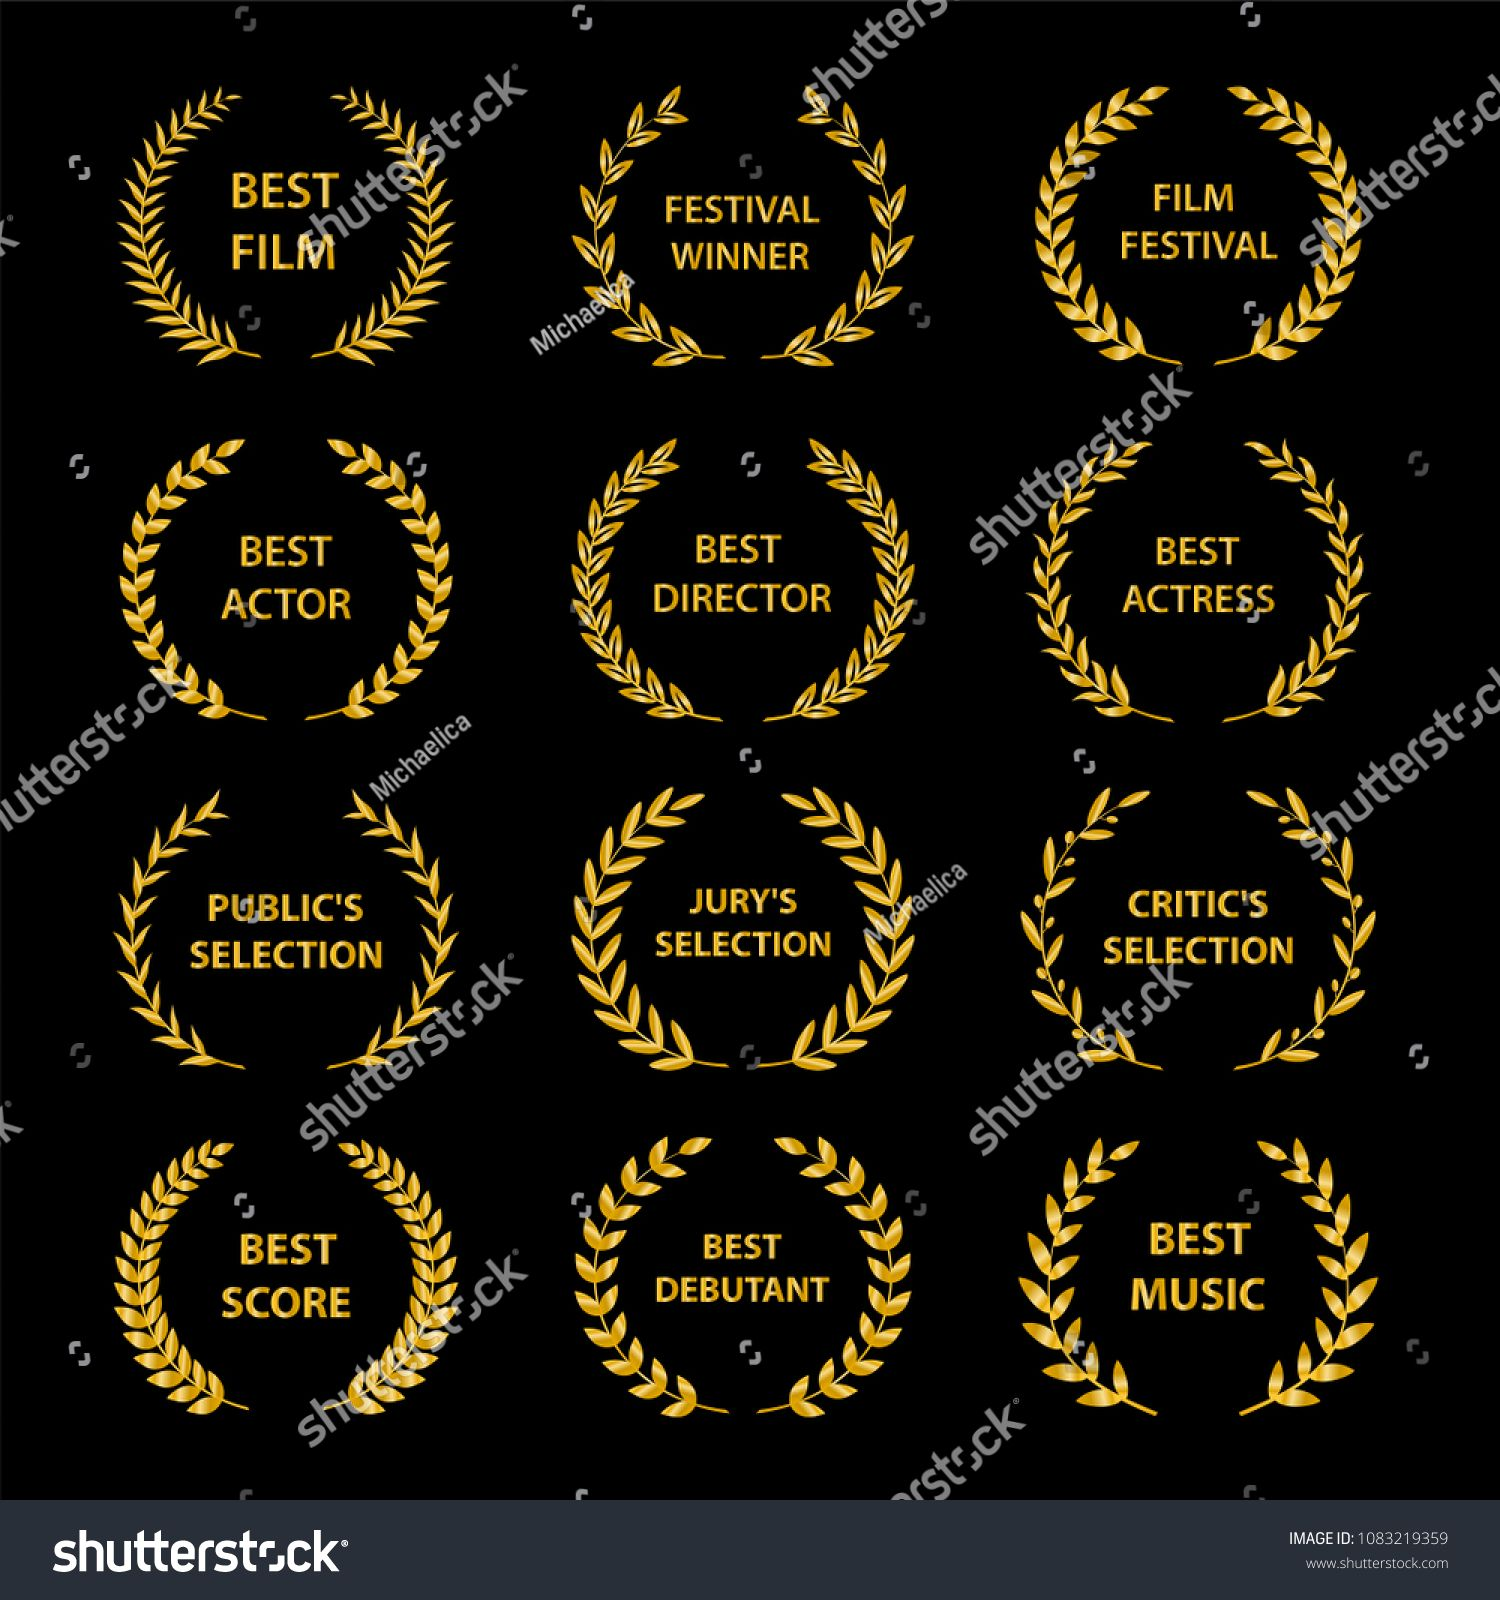 Film Awards Golden Award Wreaths On Black Background Vector Illustration Golden Award Film Awards Film Awards Film Good Music